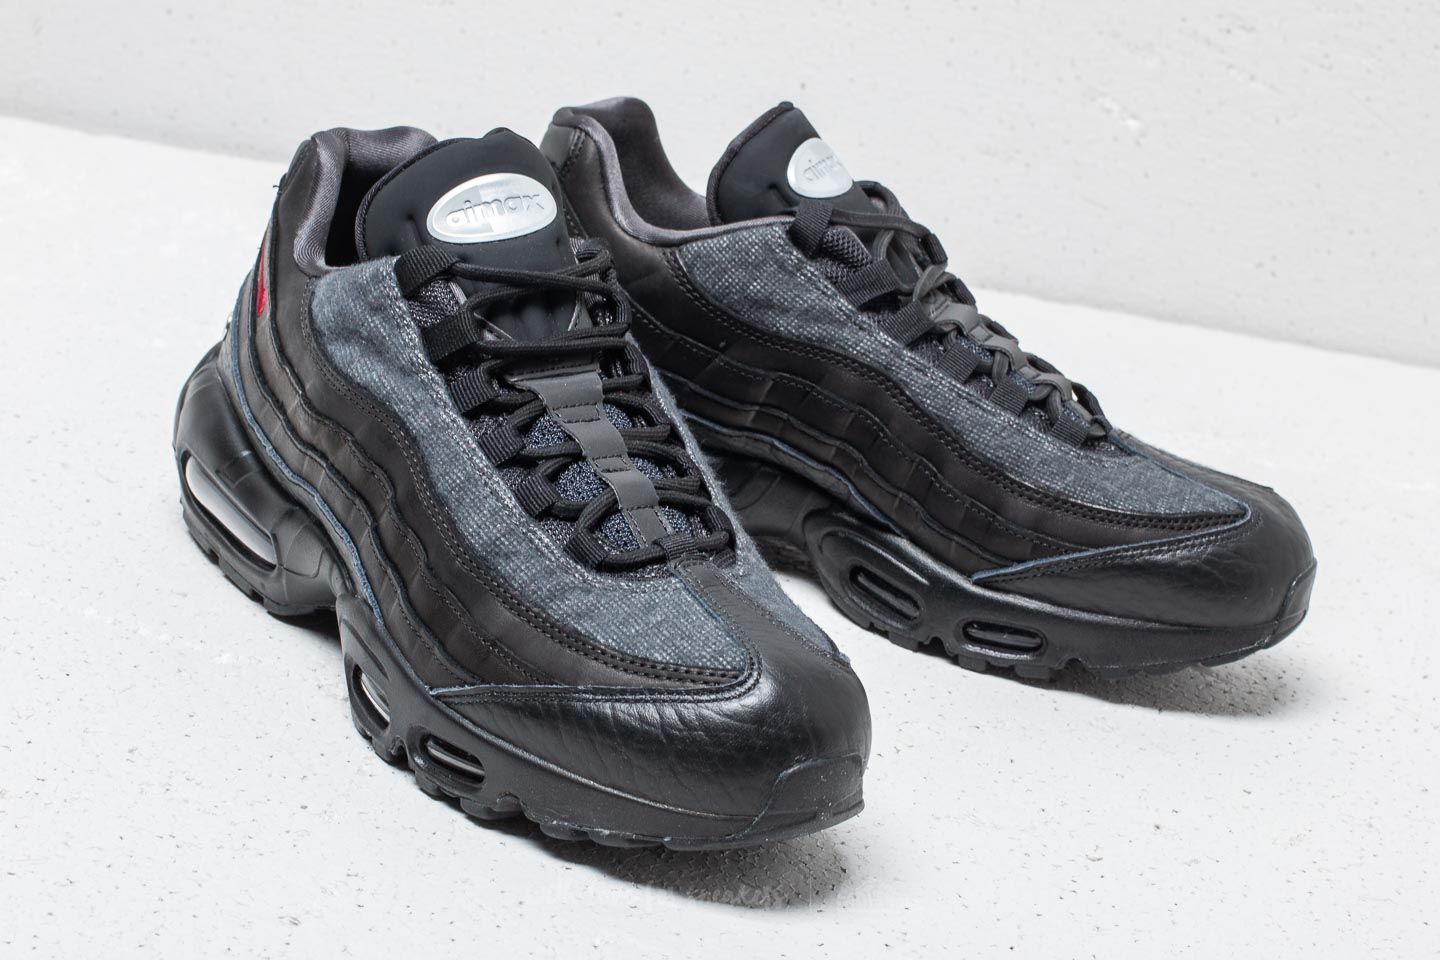 854f64e738 ... cheap nike air max 95 nrg black team red anthracite at a great price  84713 614ca